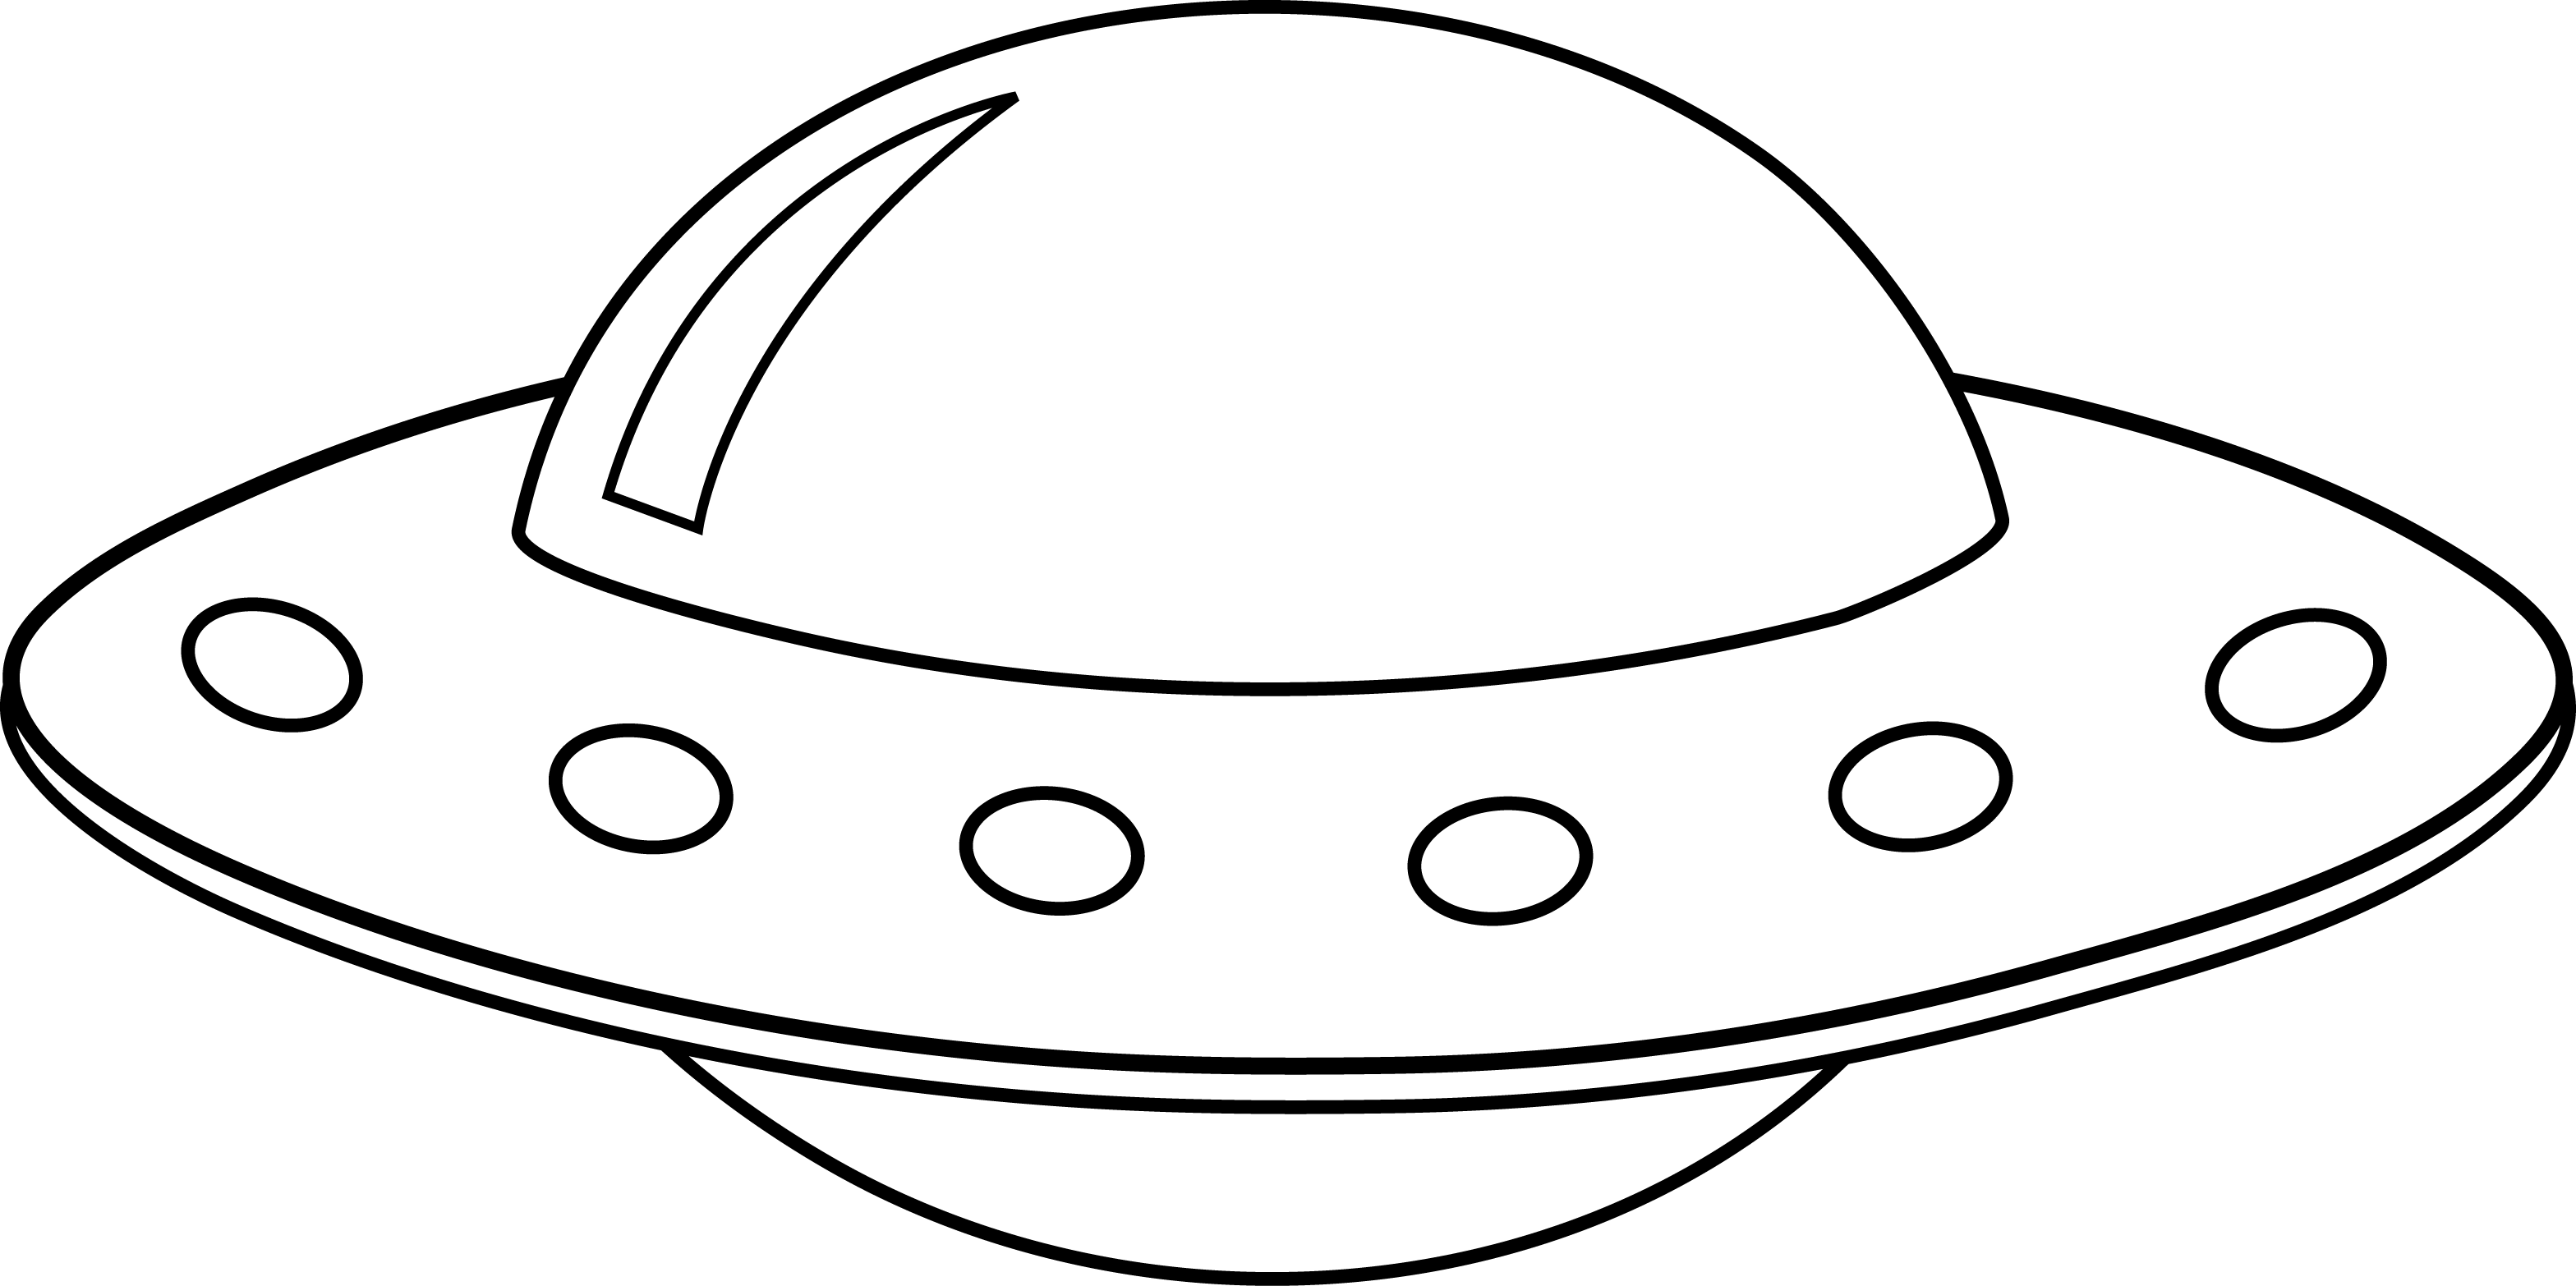 alien clipart black and white - photo #15